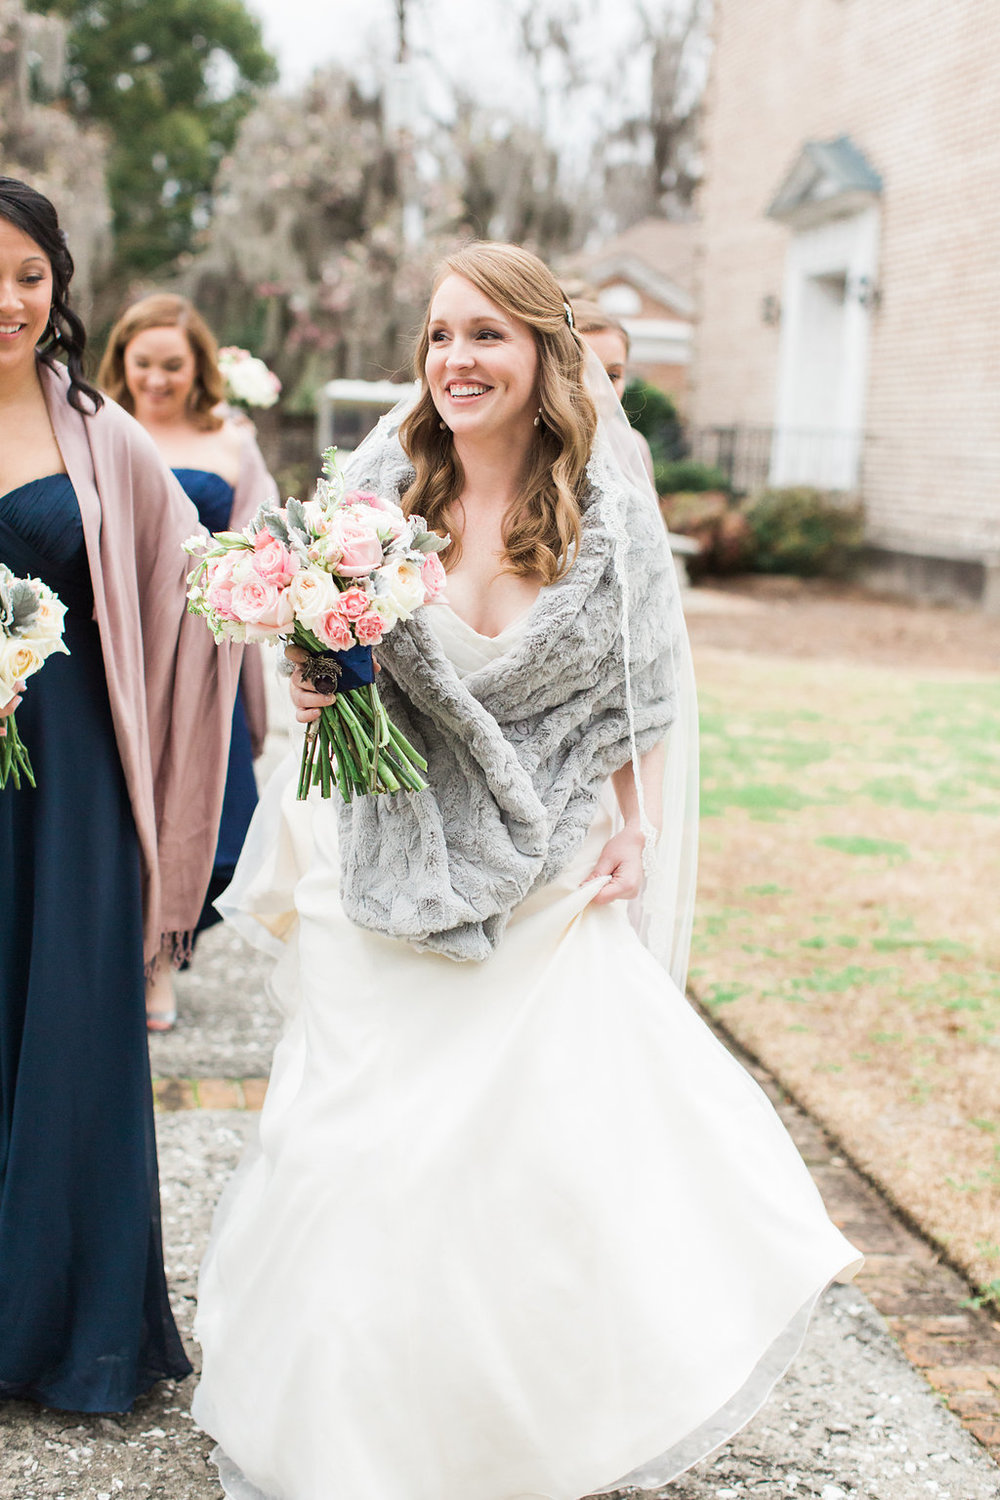 nancy-matt-wedding-whitfield-chapel-wedding-ivory-and-beau-bridal-boutique-the-happy-bloom-savannah-weddings-savannah-wedding-planner-savannah-bridal-boutique-savannah-florist-savannah-bridal-southern-wedding-9.jpg